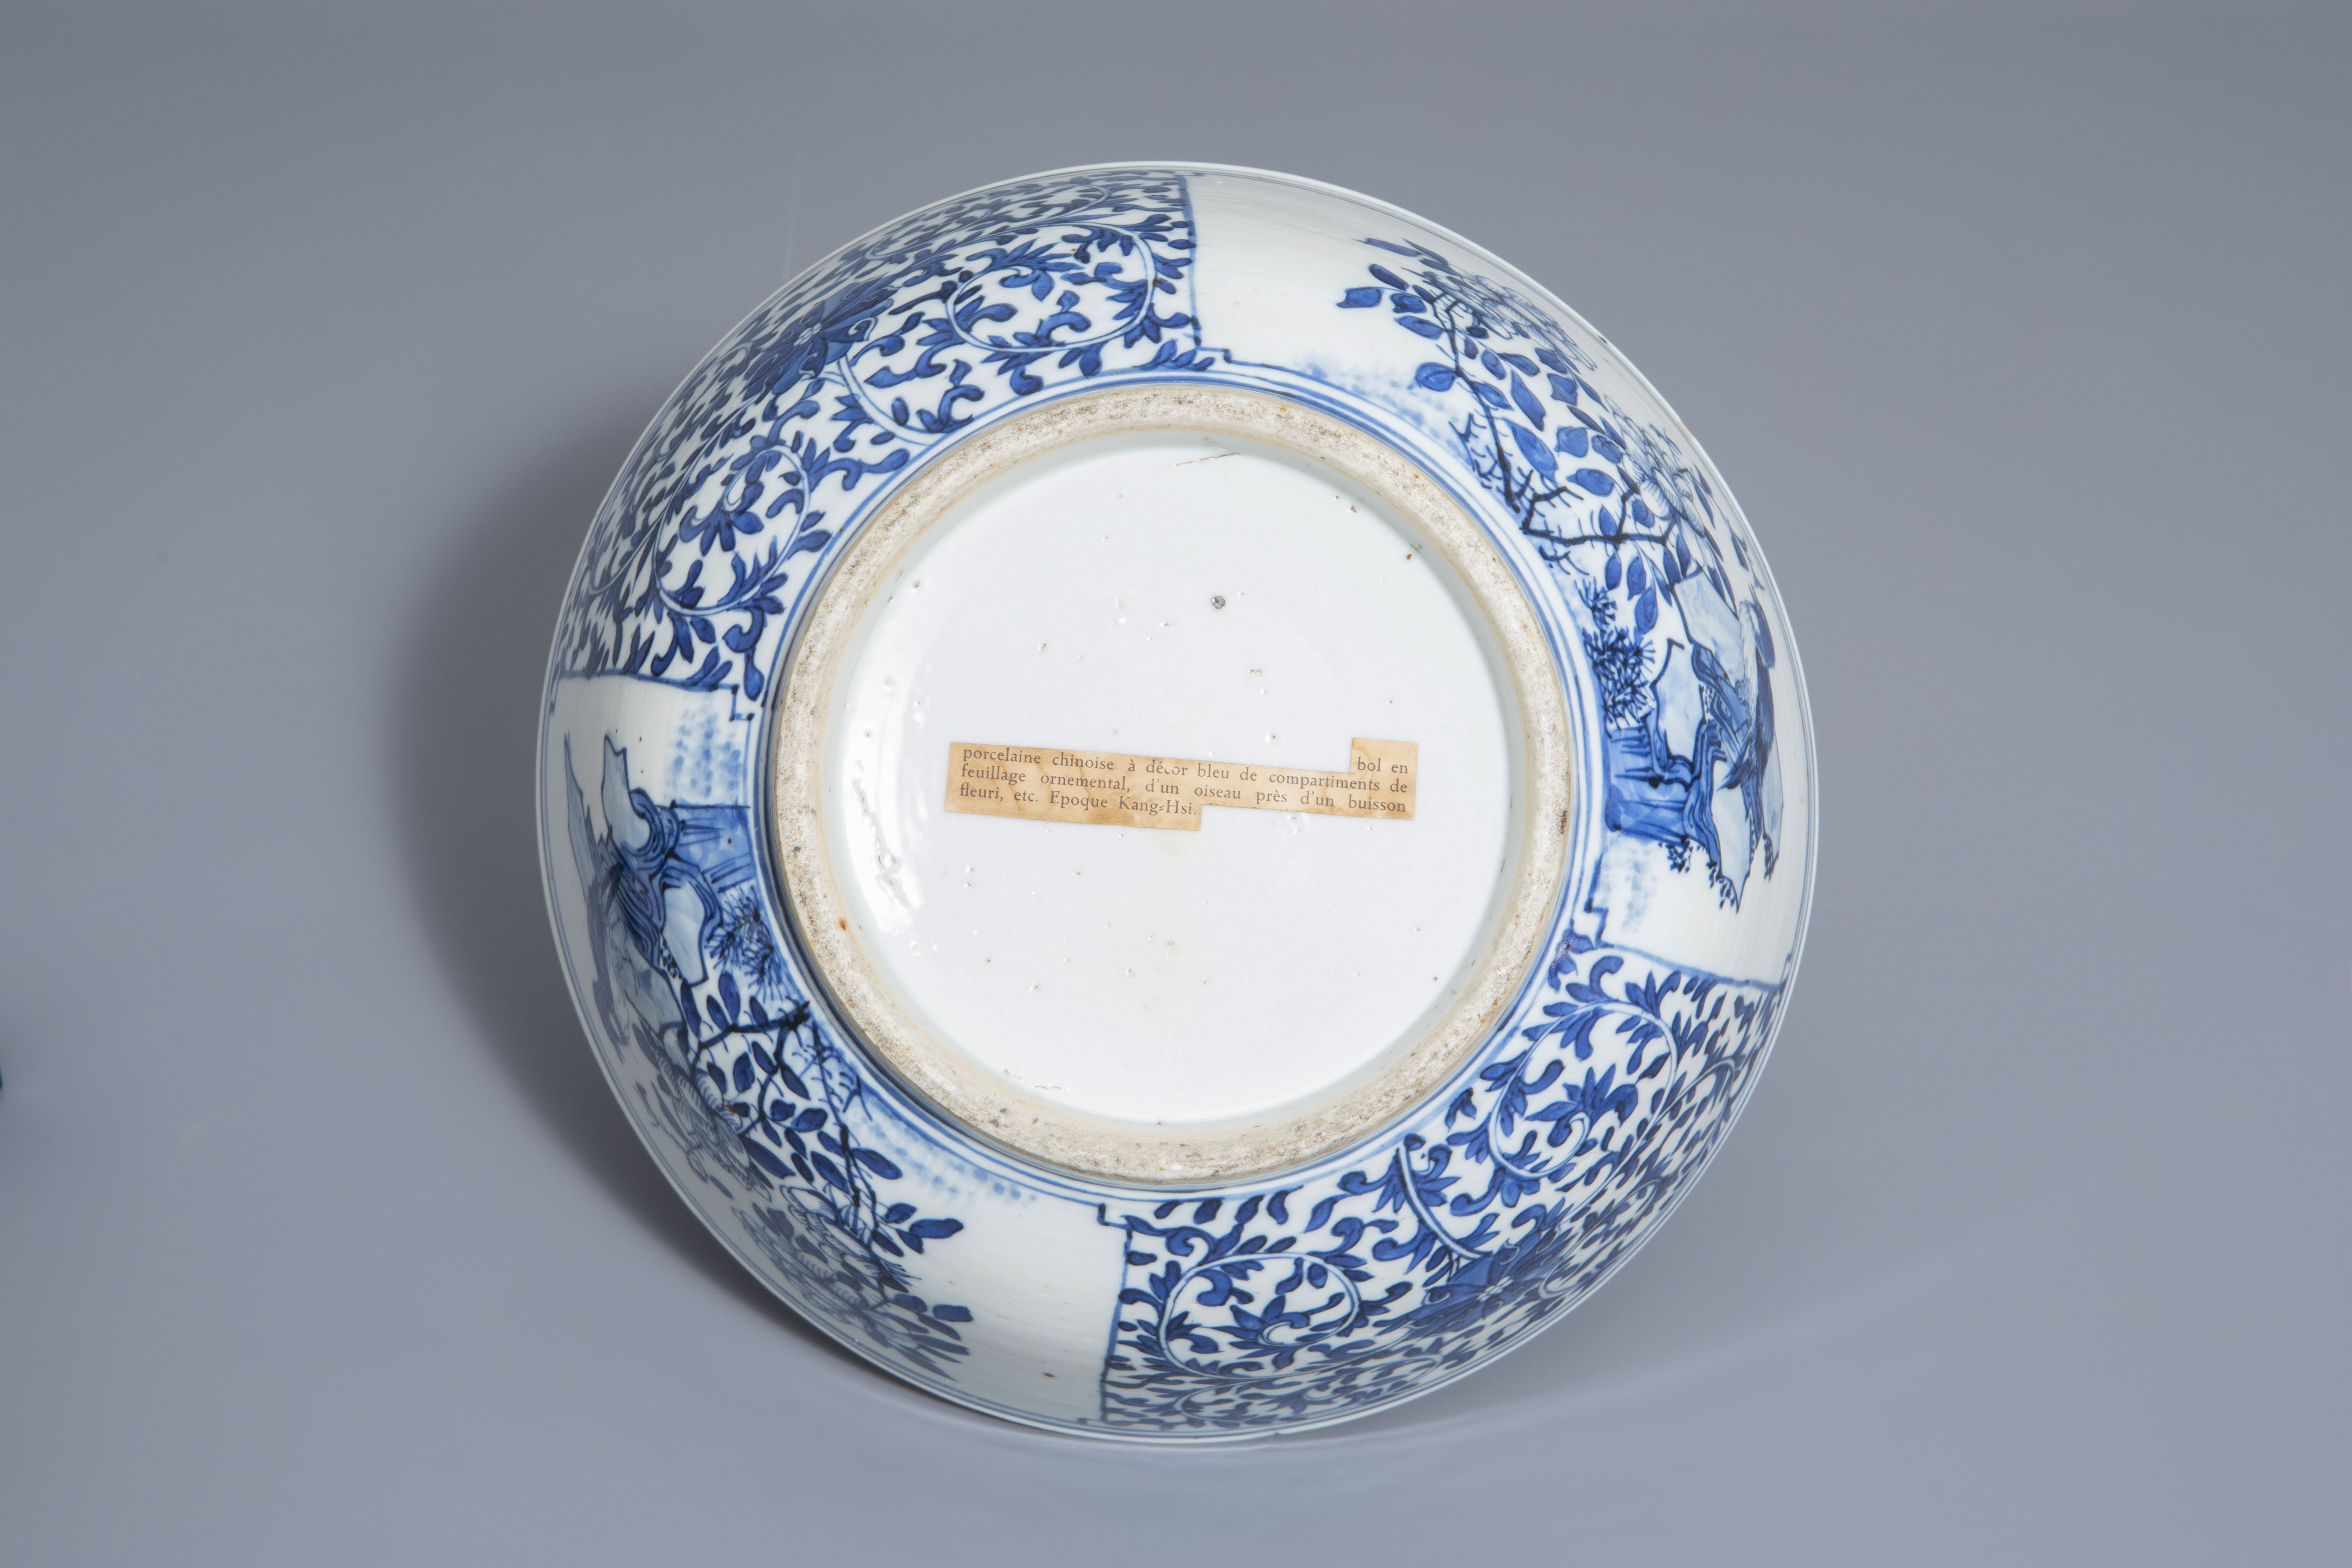 A Chinese blue and white bowl with birds and flowers, 19th C. - Image 7 of 7